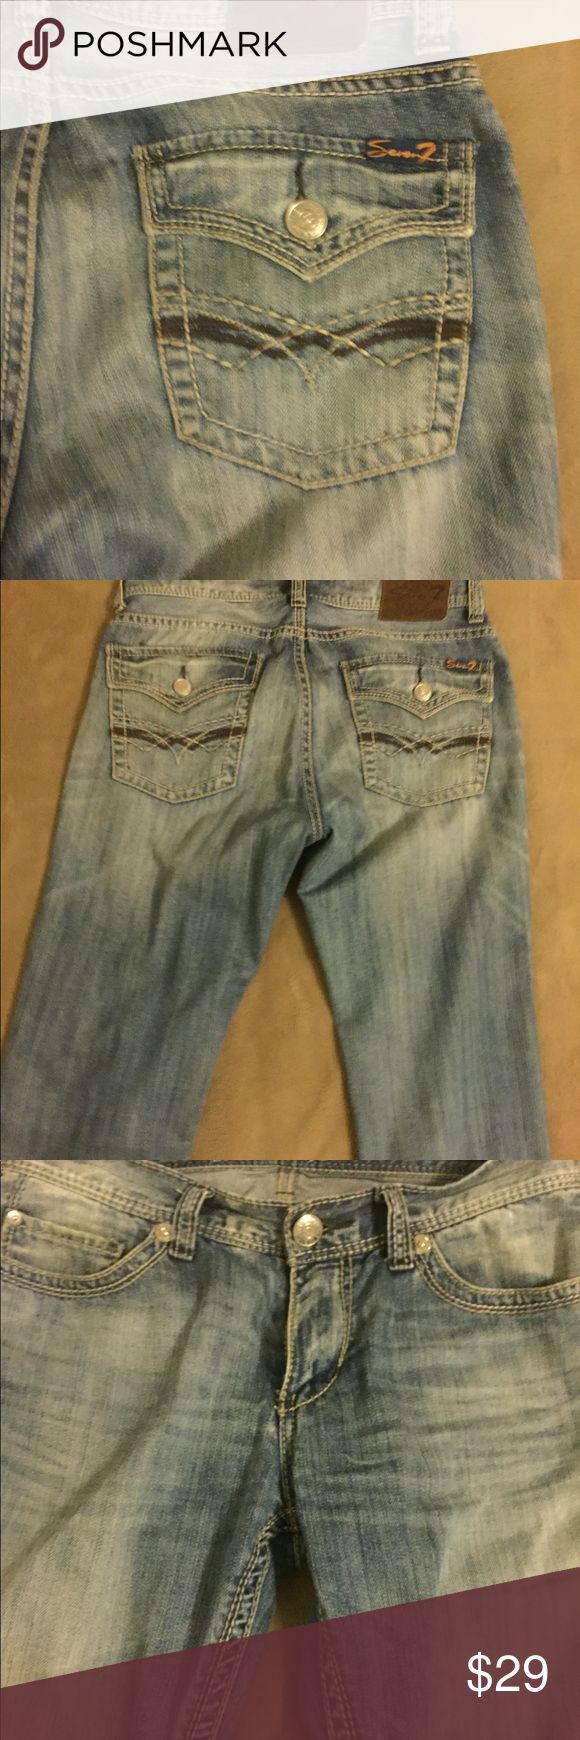 MENS Seven jeans 34 Great jeans for going out or casual wear. These were worn a few times only. They're super cool with a little worn look (white washed) to them. Grab em before they're gone! 34. No stains nothing Seven7 Jeans Straight